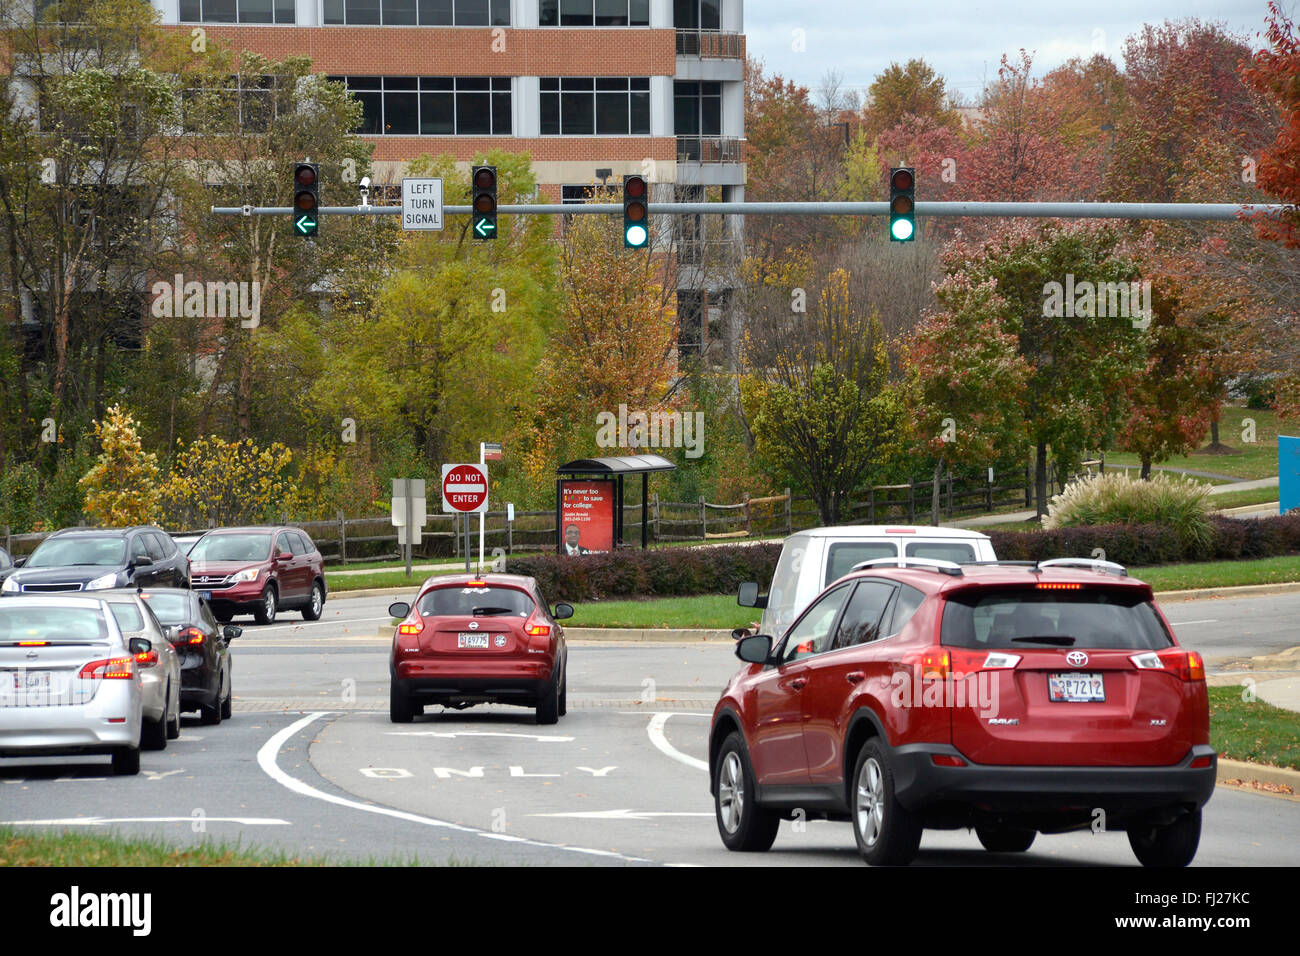 street scene in Bowie, Maryland - Stock Image